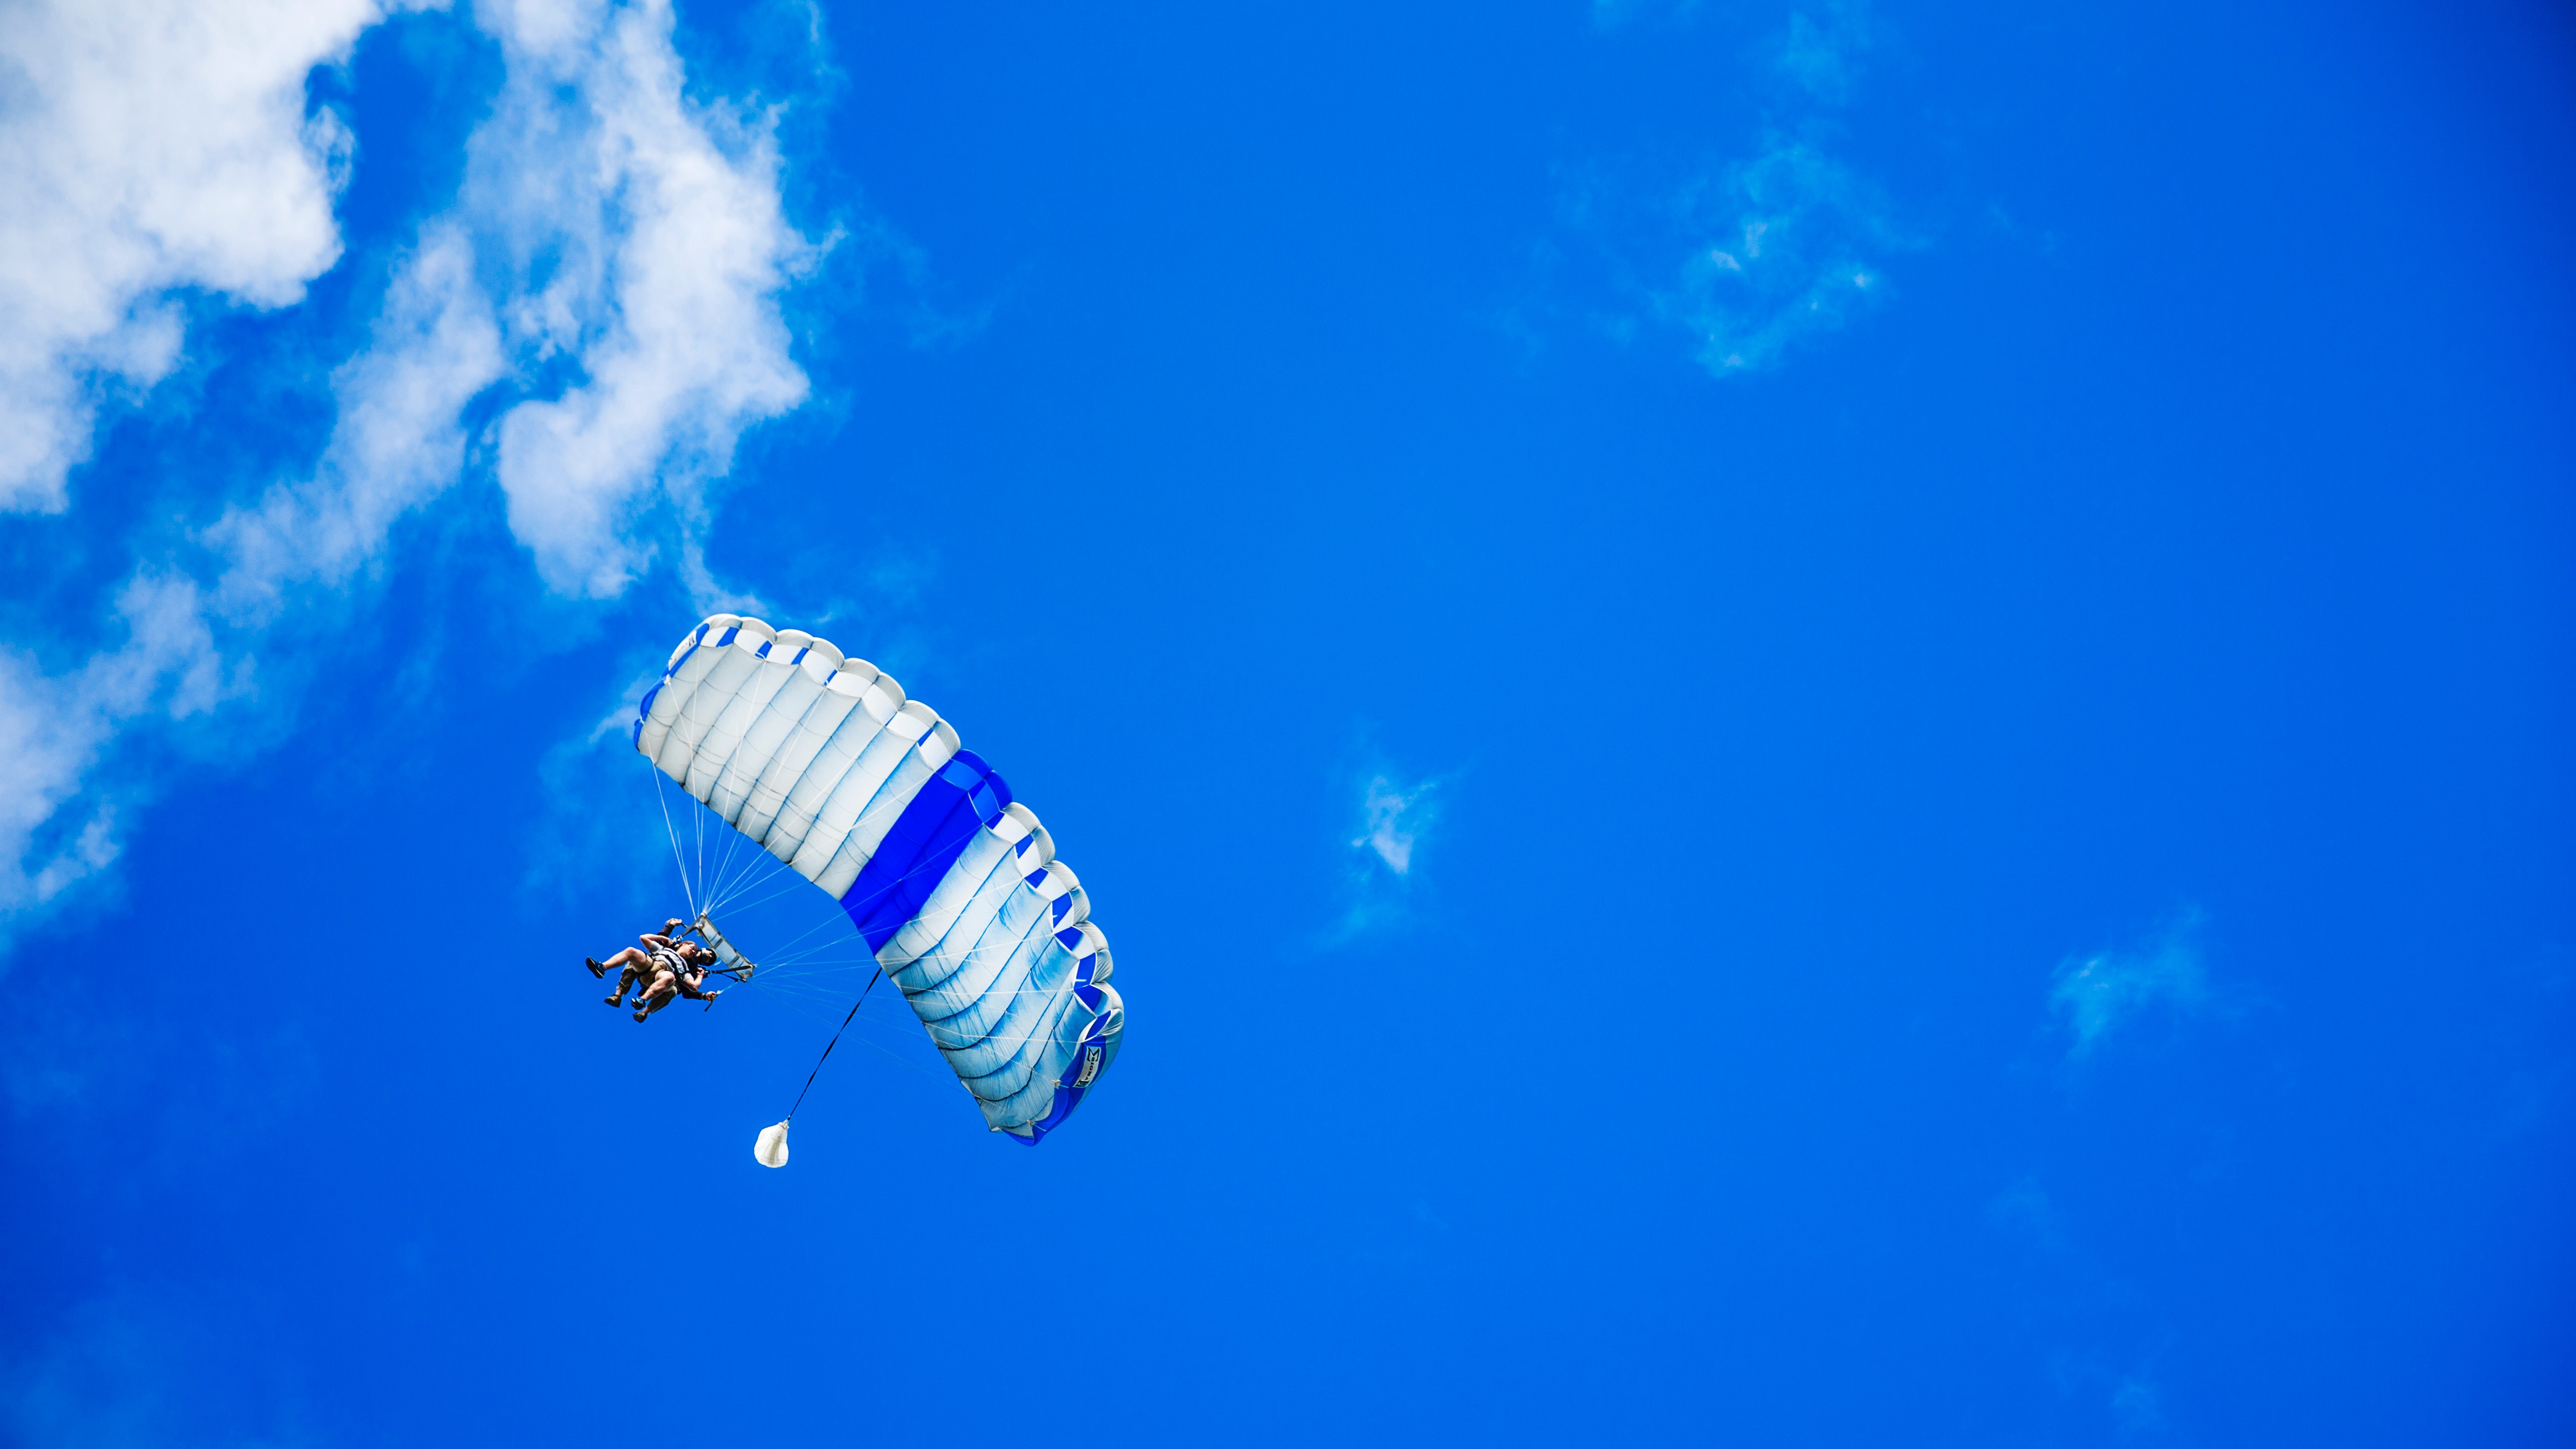 Skydiving-blue-sky.jpg